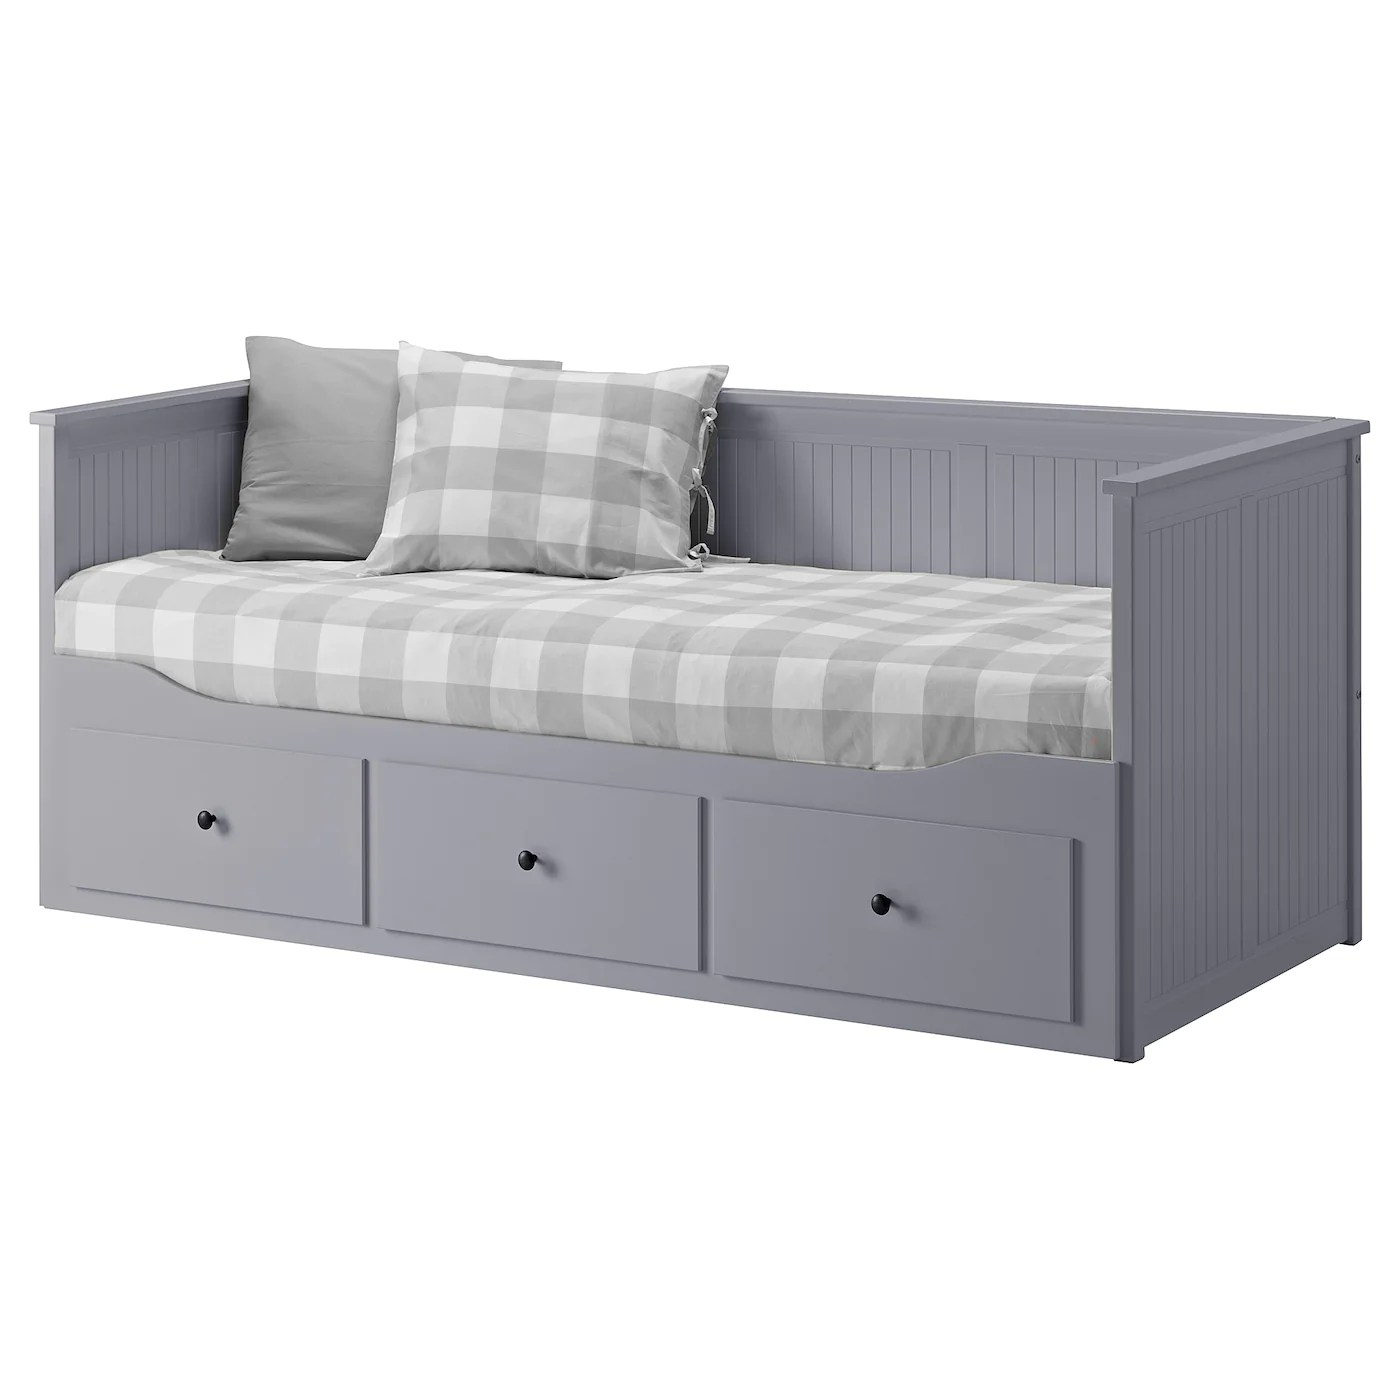 Sofa Ikea Oferta Hemnes Day Bed Frame With 3 Drawers Grey